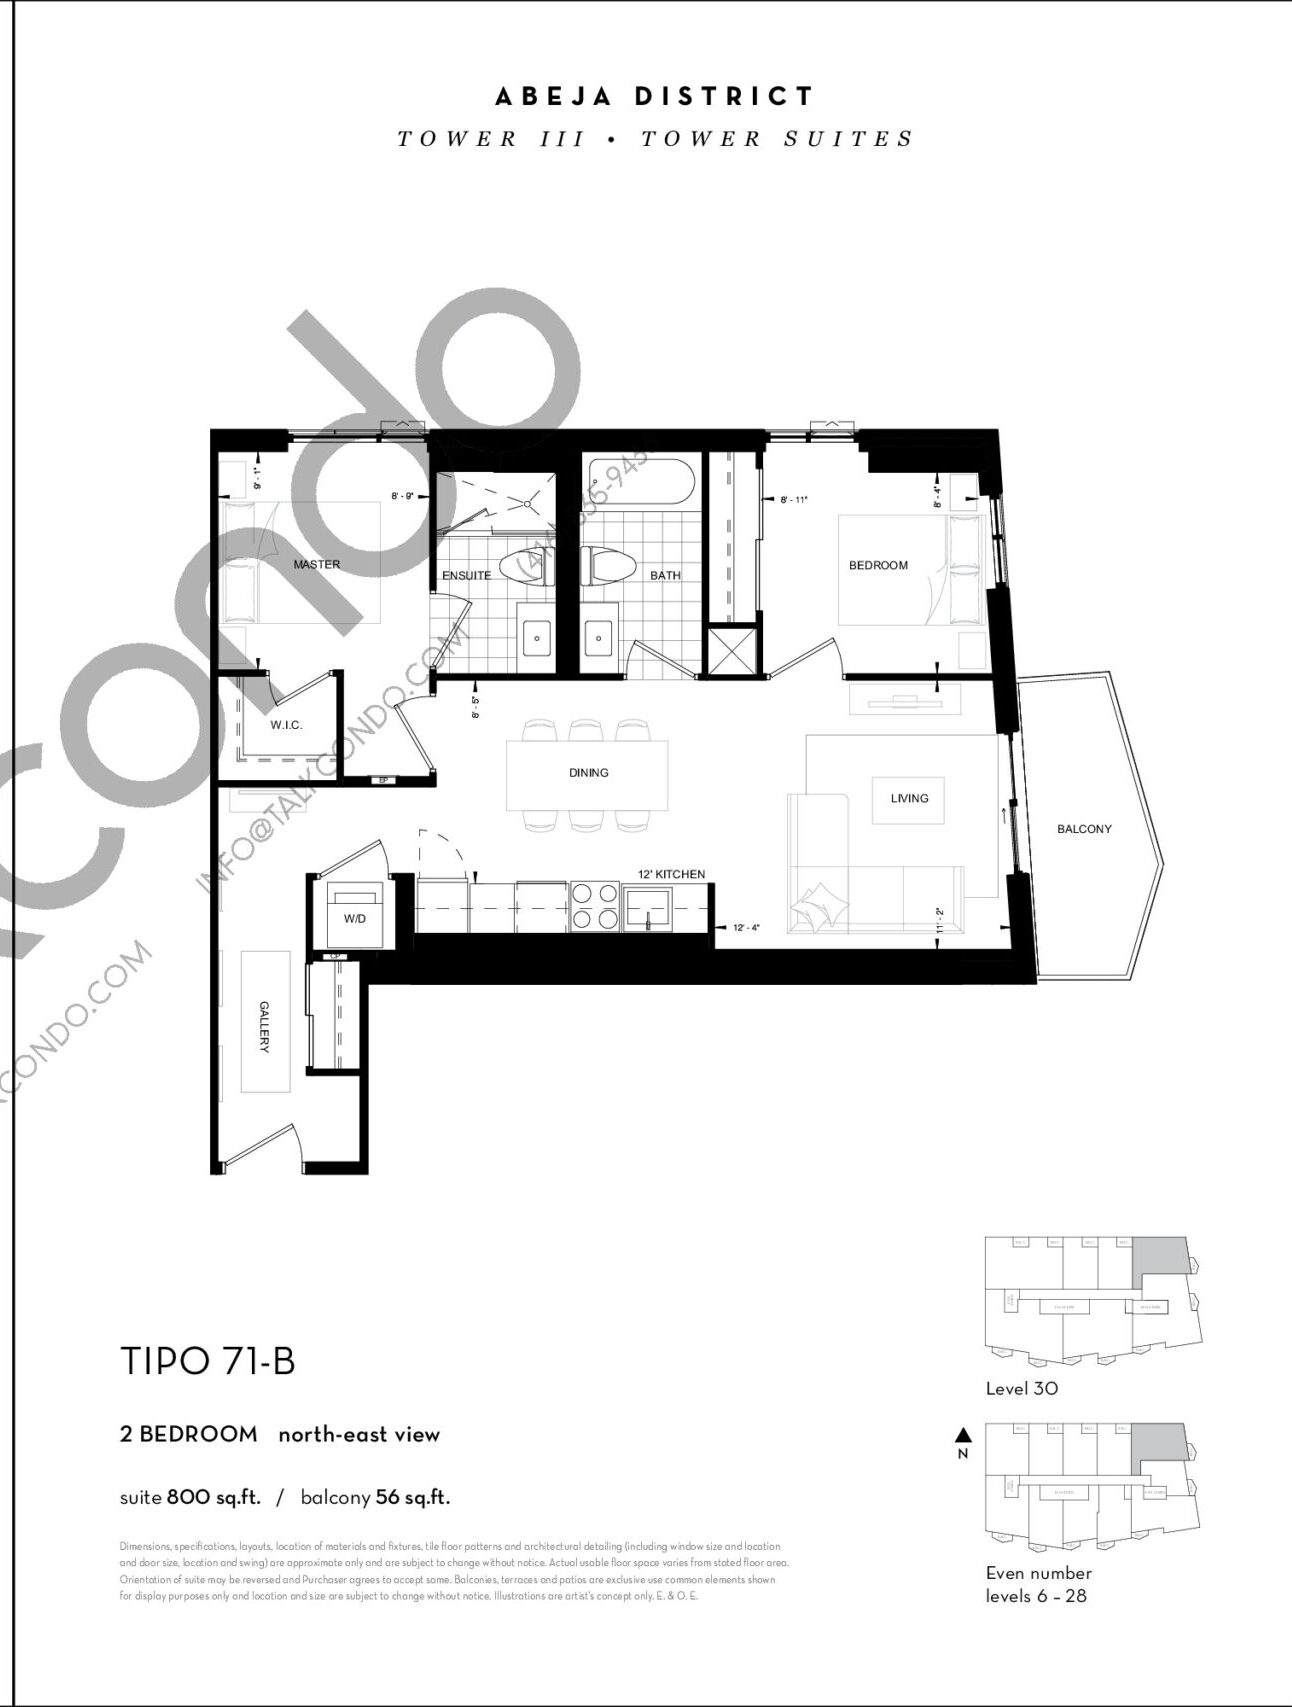 TIPO 71-B Floor Plan at Abeja District Condos Tower 3 - 800 sq.ft